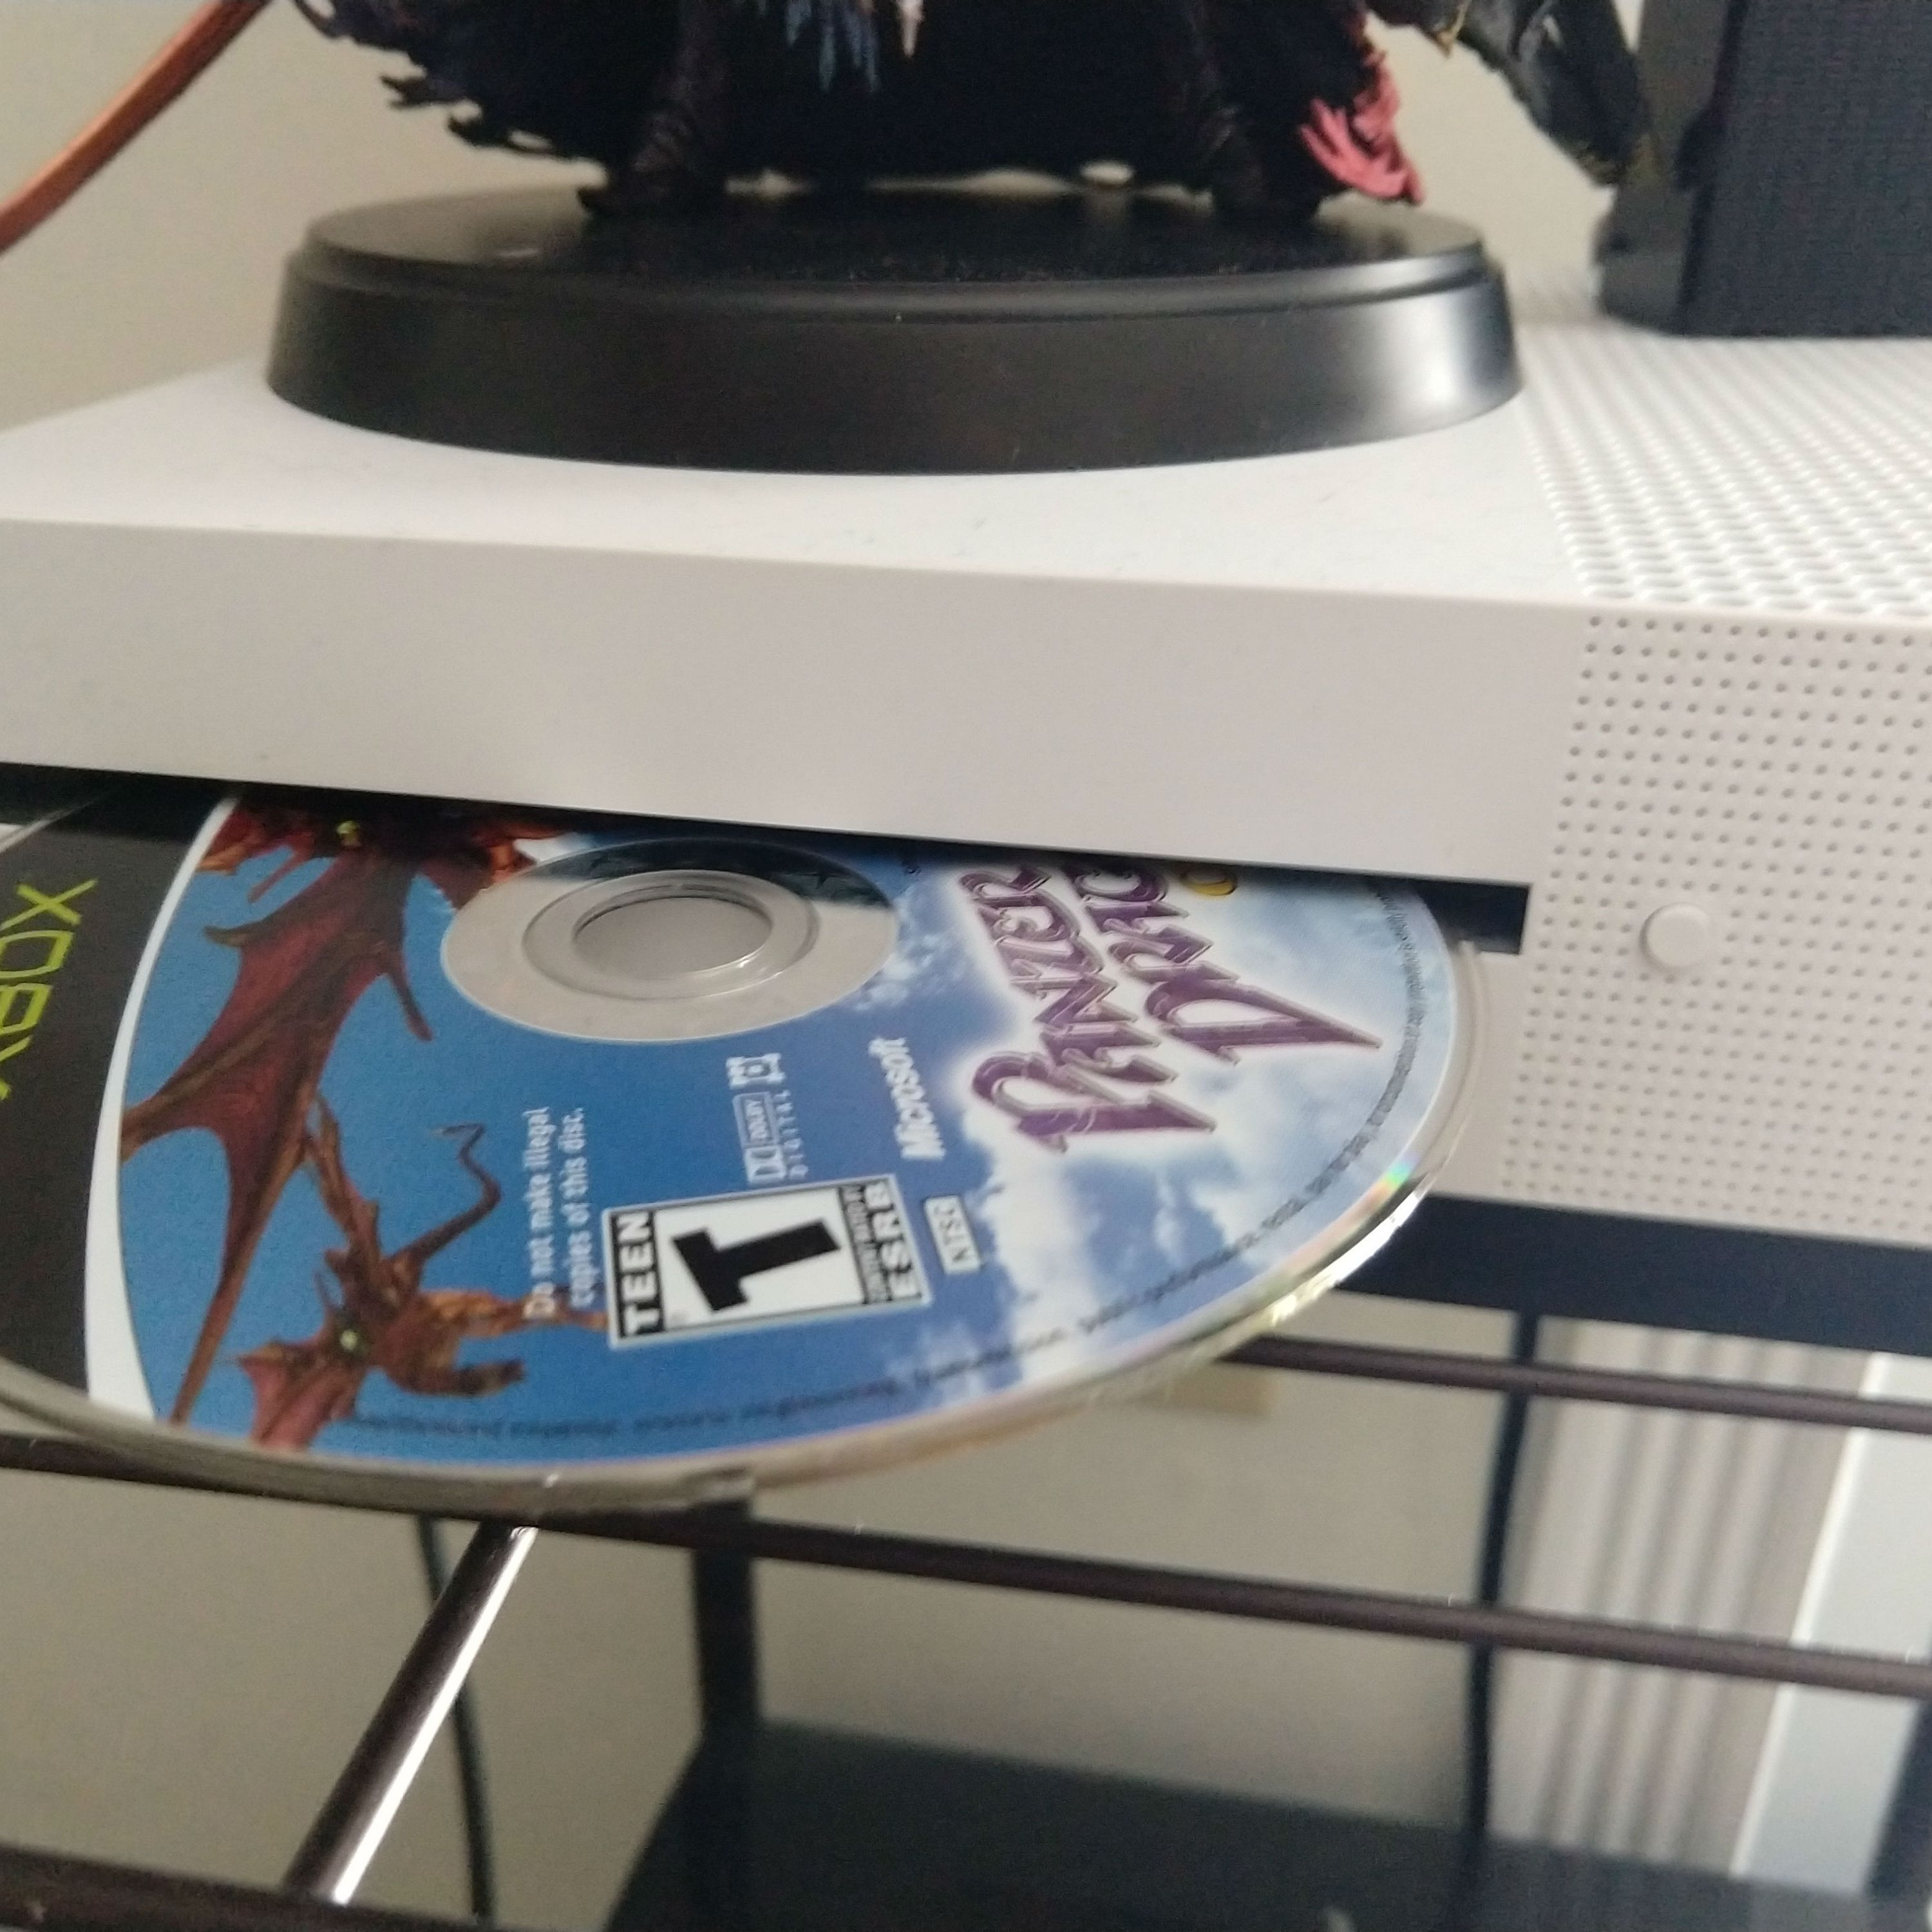 How To Play Xbox 360 Games On Xbox One